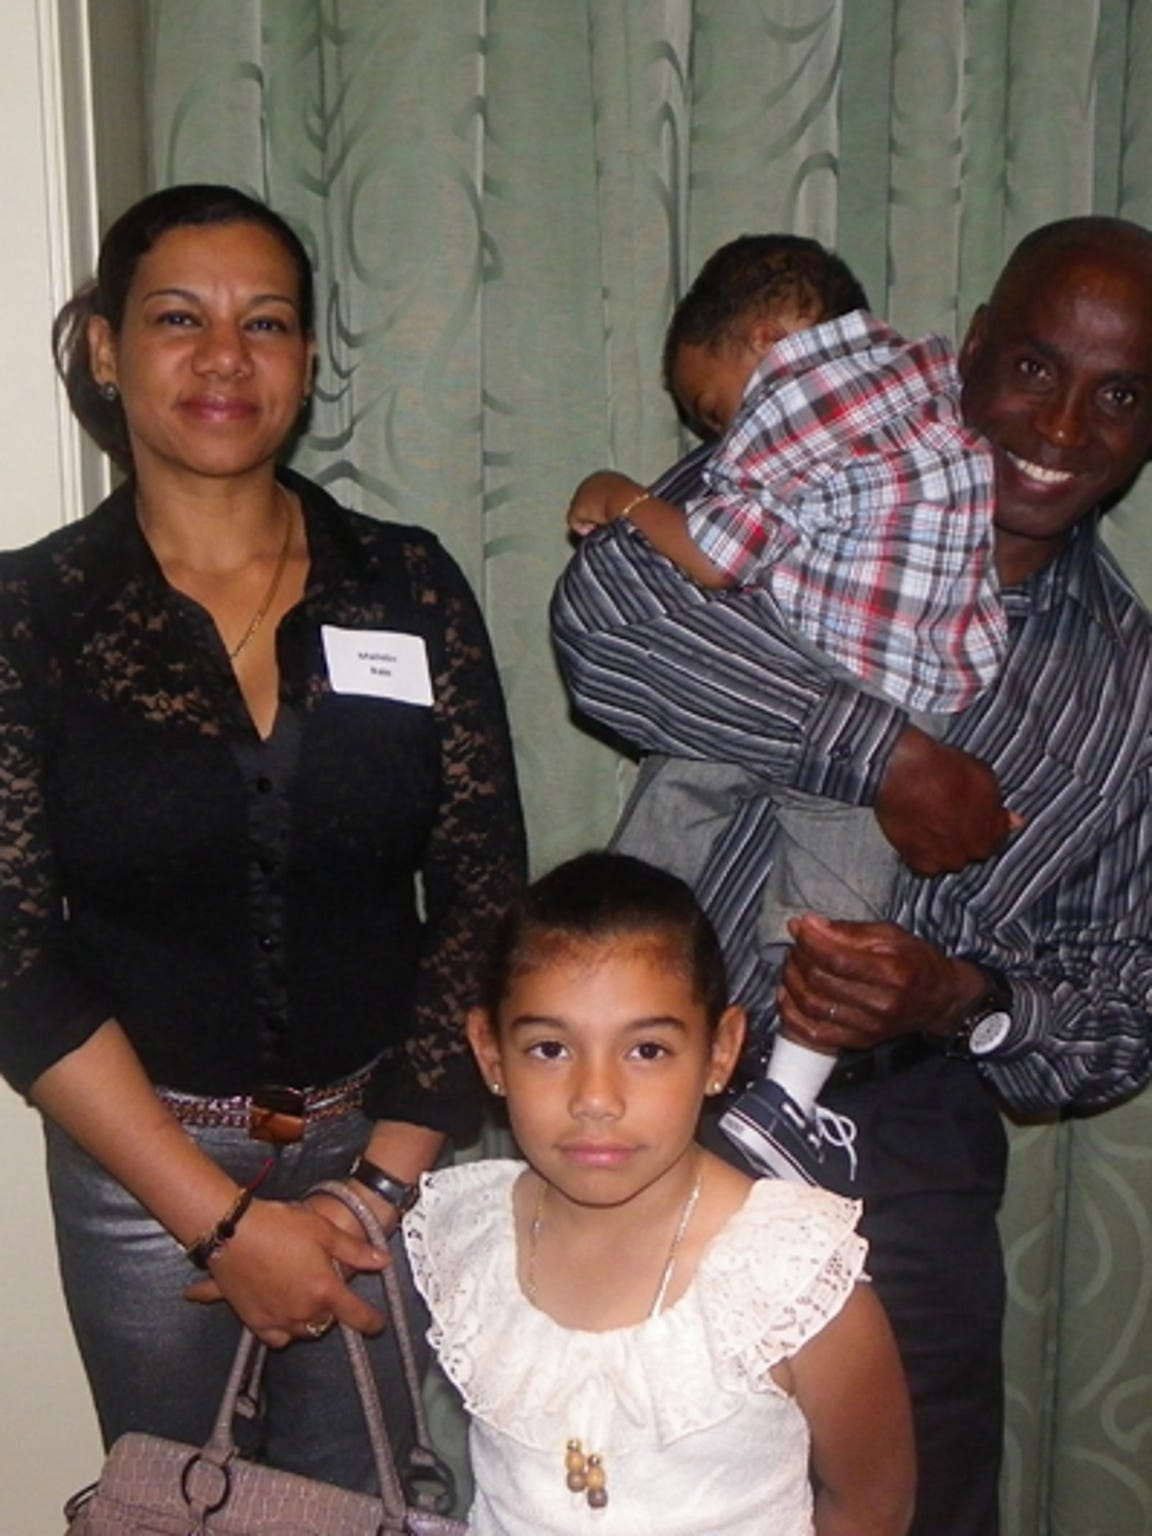 James Bain is pictured with his wife and children.